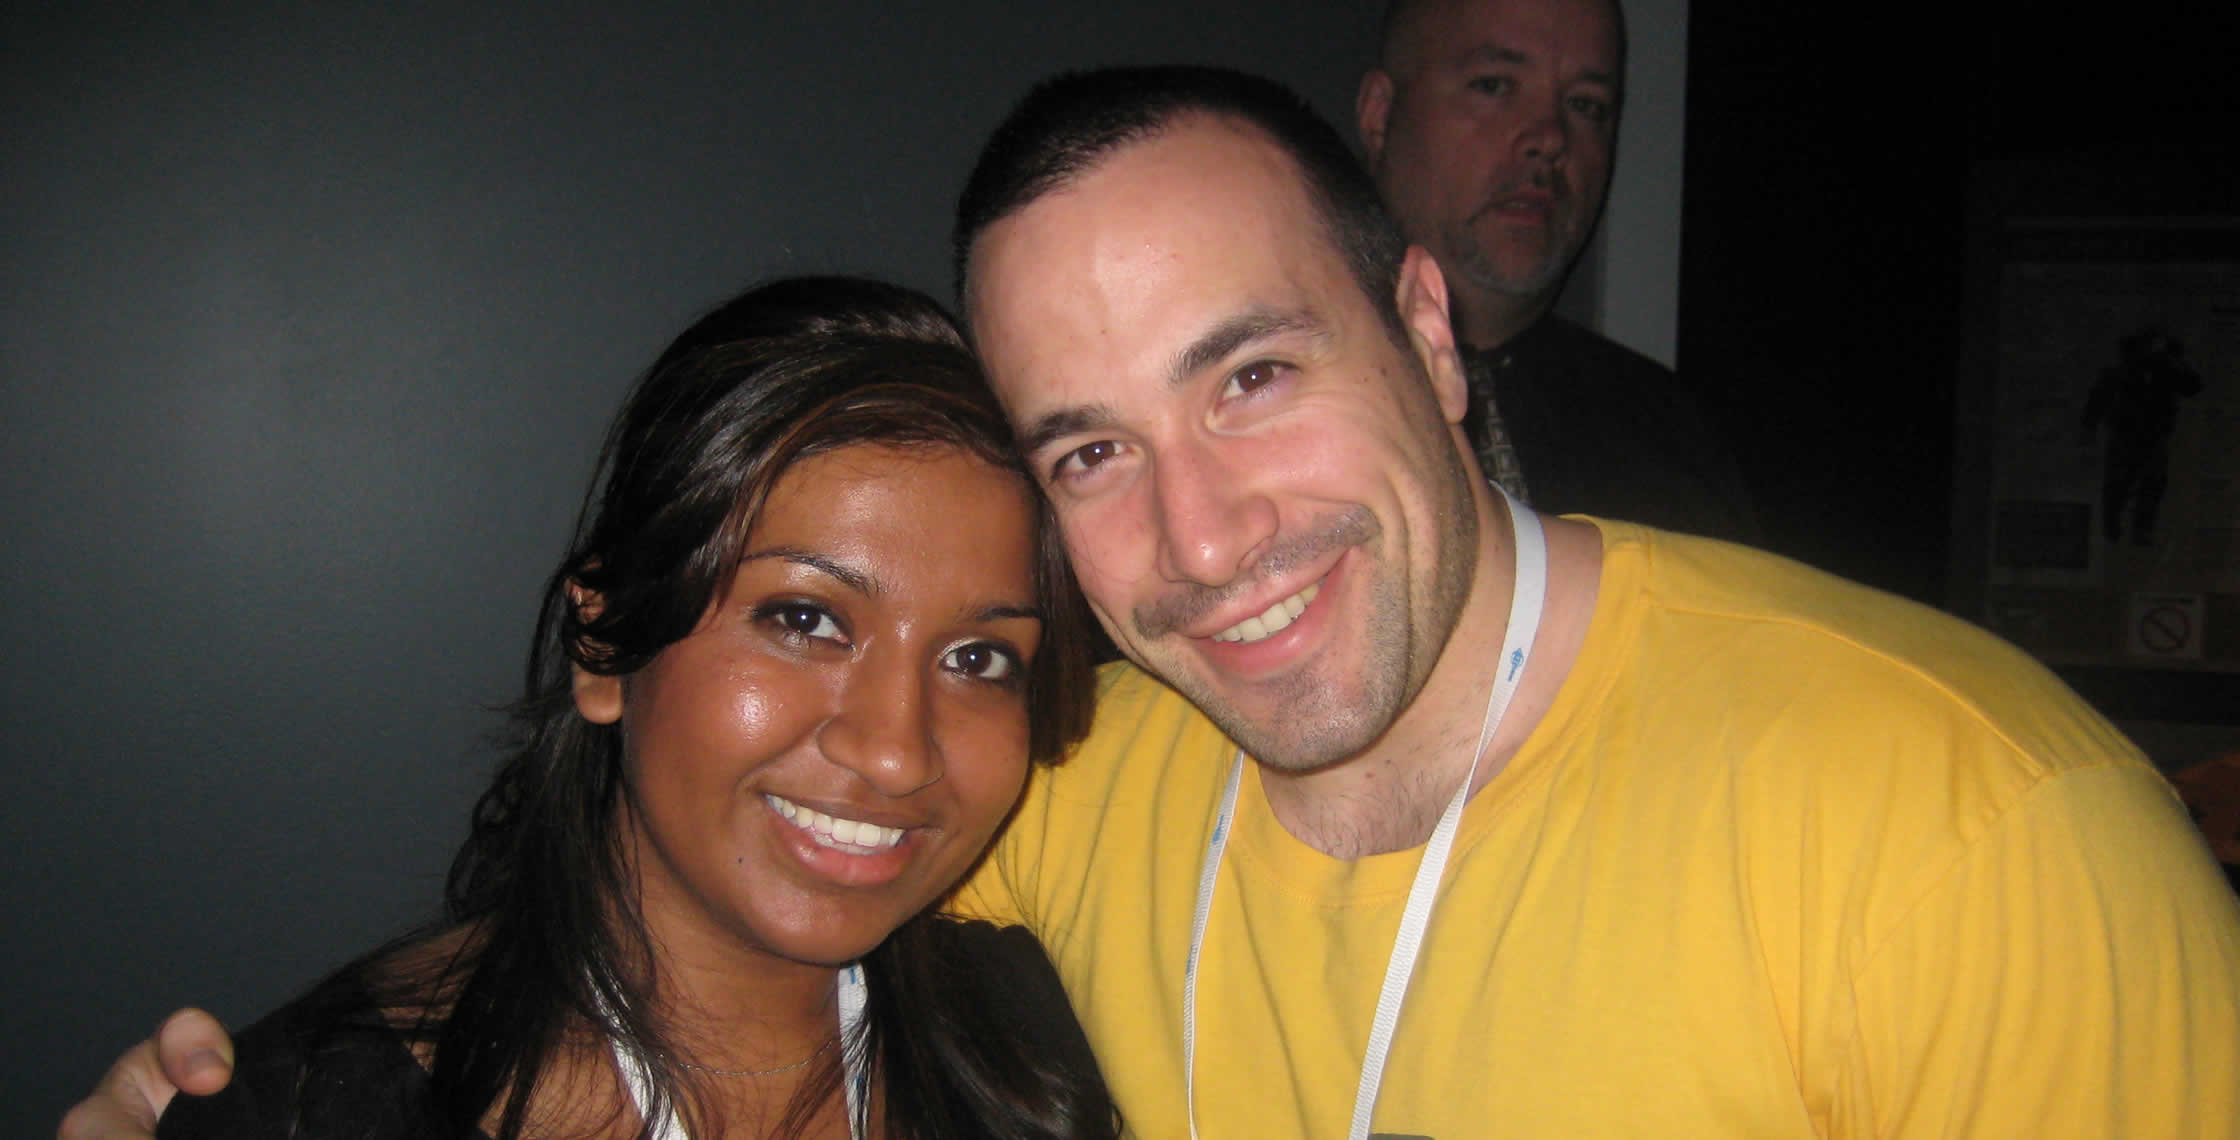 Ben Nadel at CFUNITED 2008 (Washington, D.C.) with: Nafisa Sabu